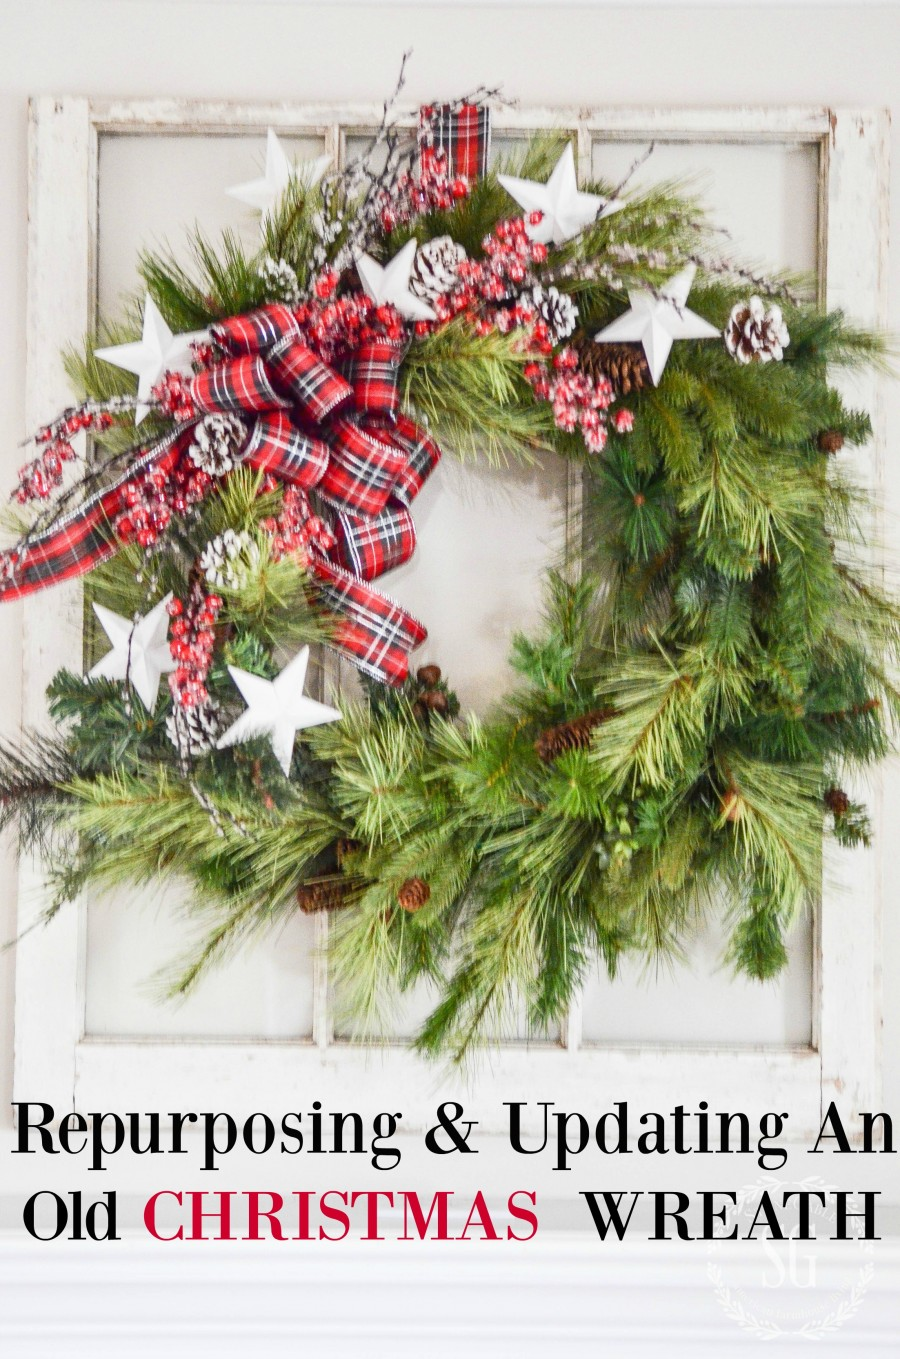 UPDATING AND REPURPOSING AN OLD CHRISTMAS WREATH- Don't throw away your old tired faux Christmas wreaths... make them over! YOU can do this!